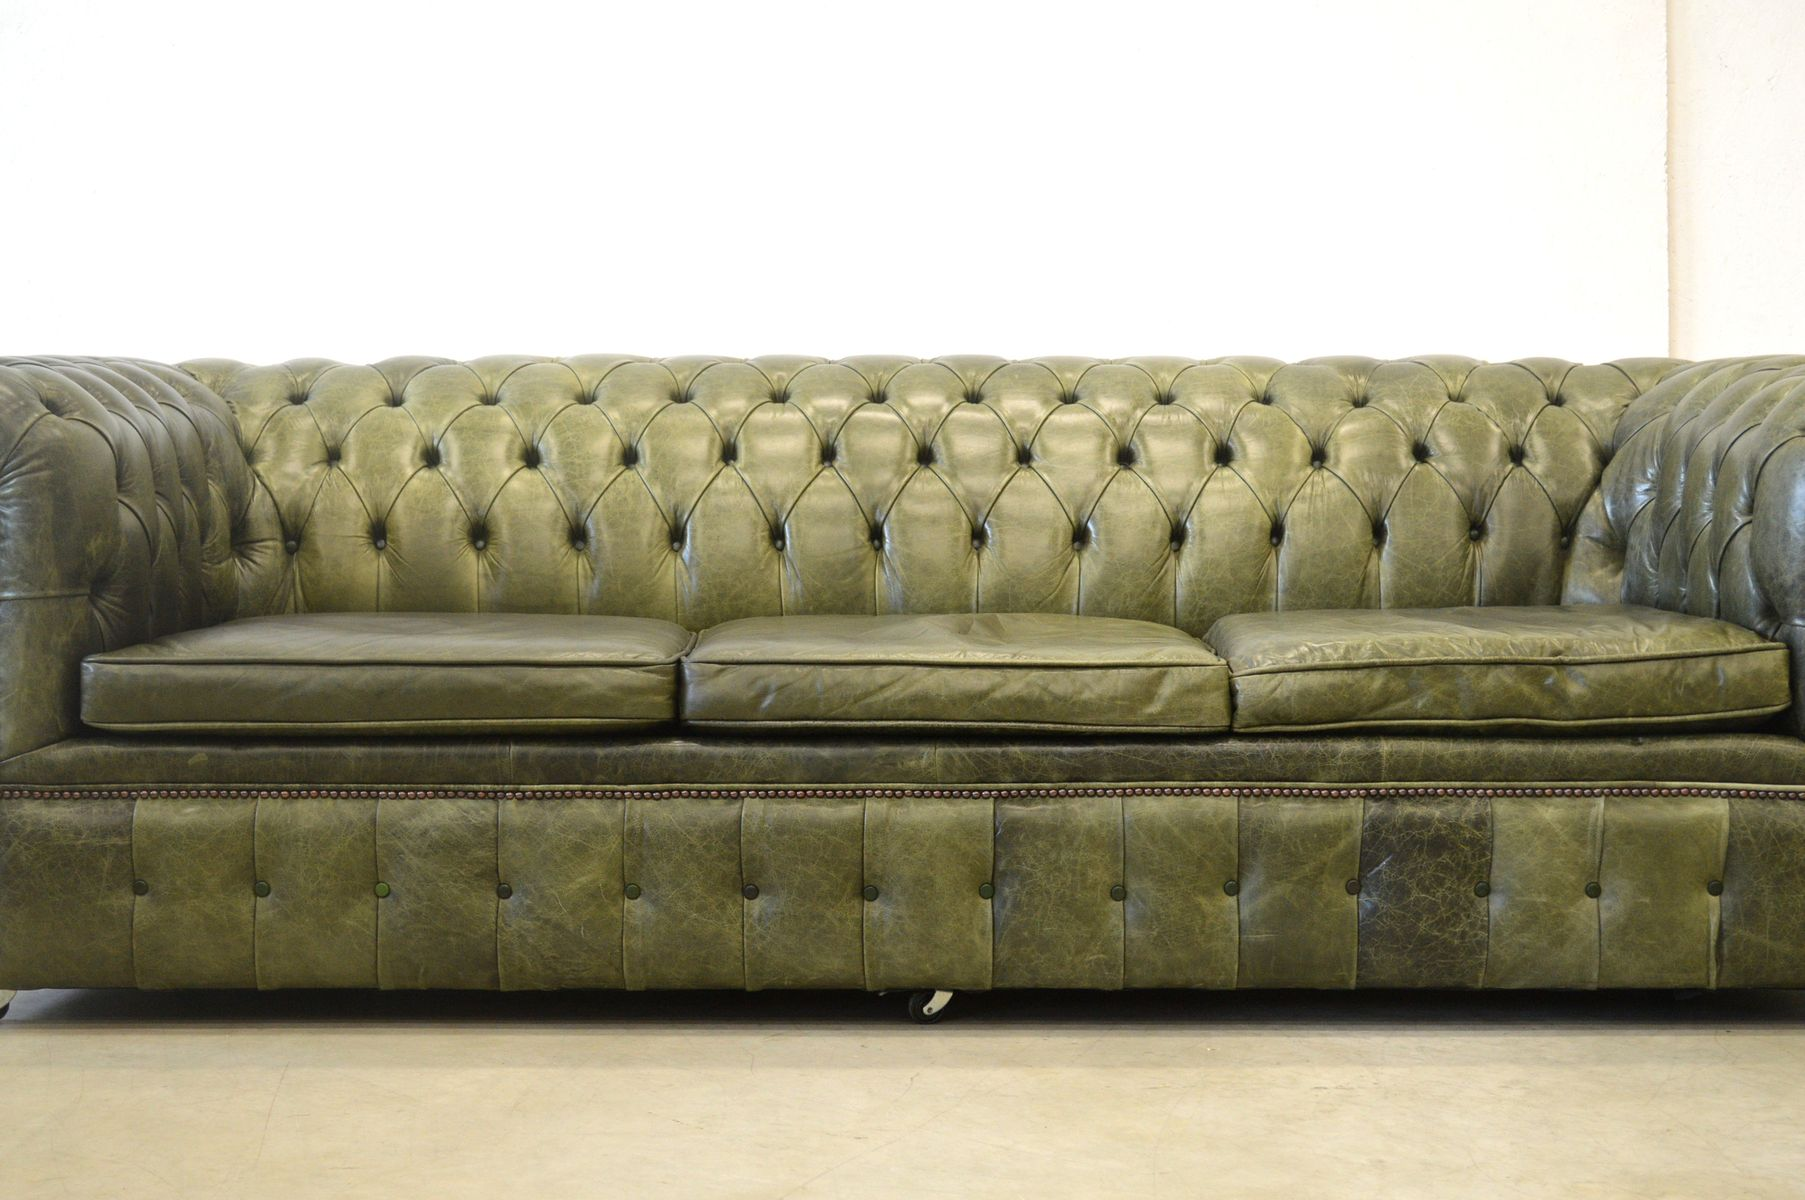 englisches gr nes leder chesterfield sofa 1970er bei pamono kaufen. Black Bedroom Furniture Sets. Home Design Ideas